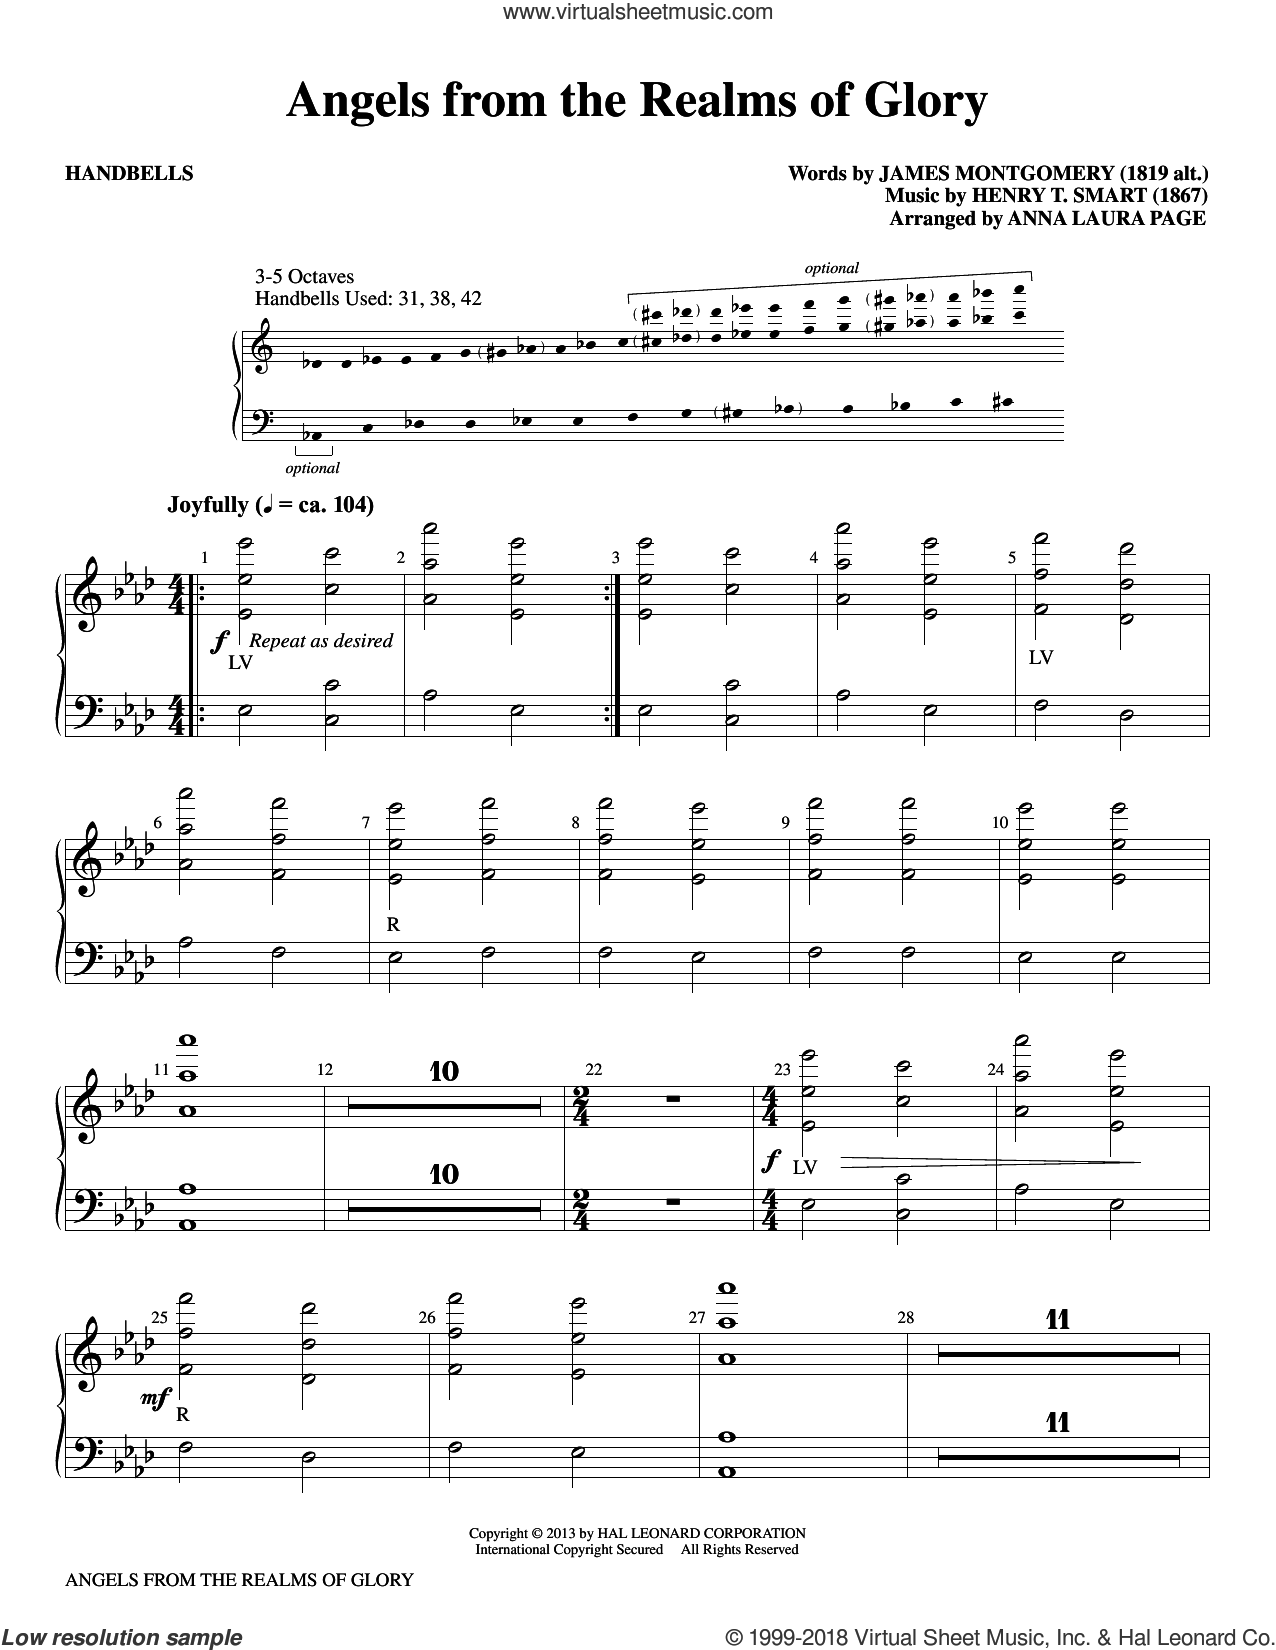 Angels From The Realms Of Glory sheet music for percussions by Anna Laura Page, Henry T. Smart and James Montgomery, intermediate skill level